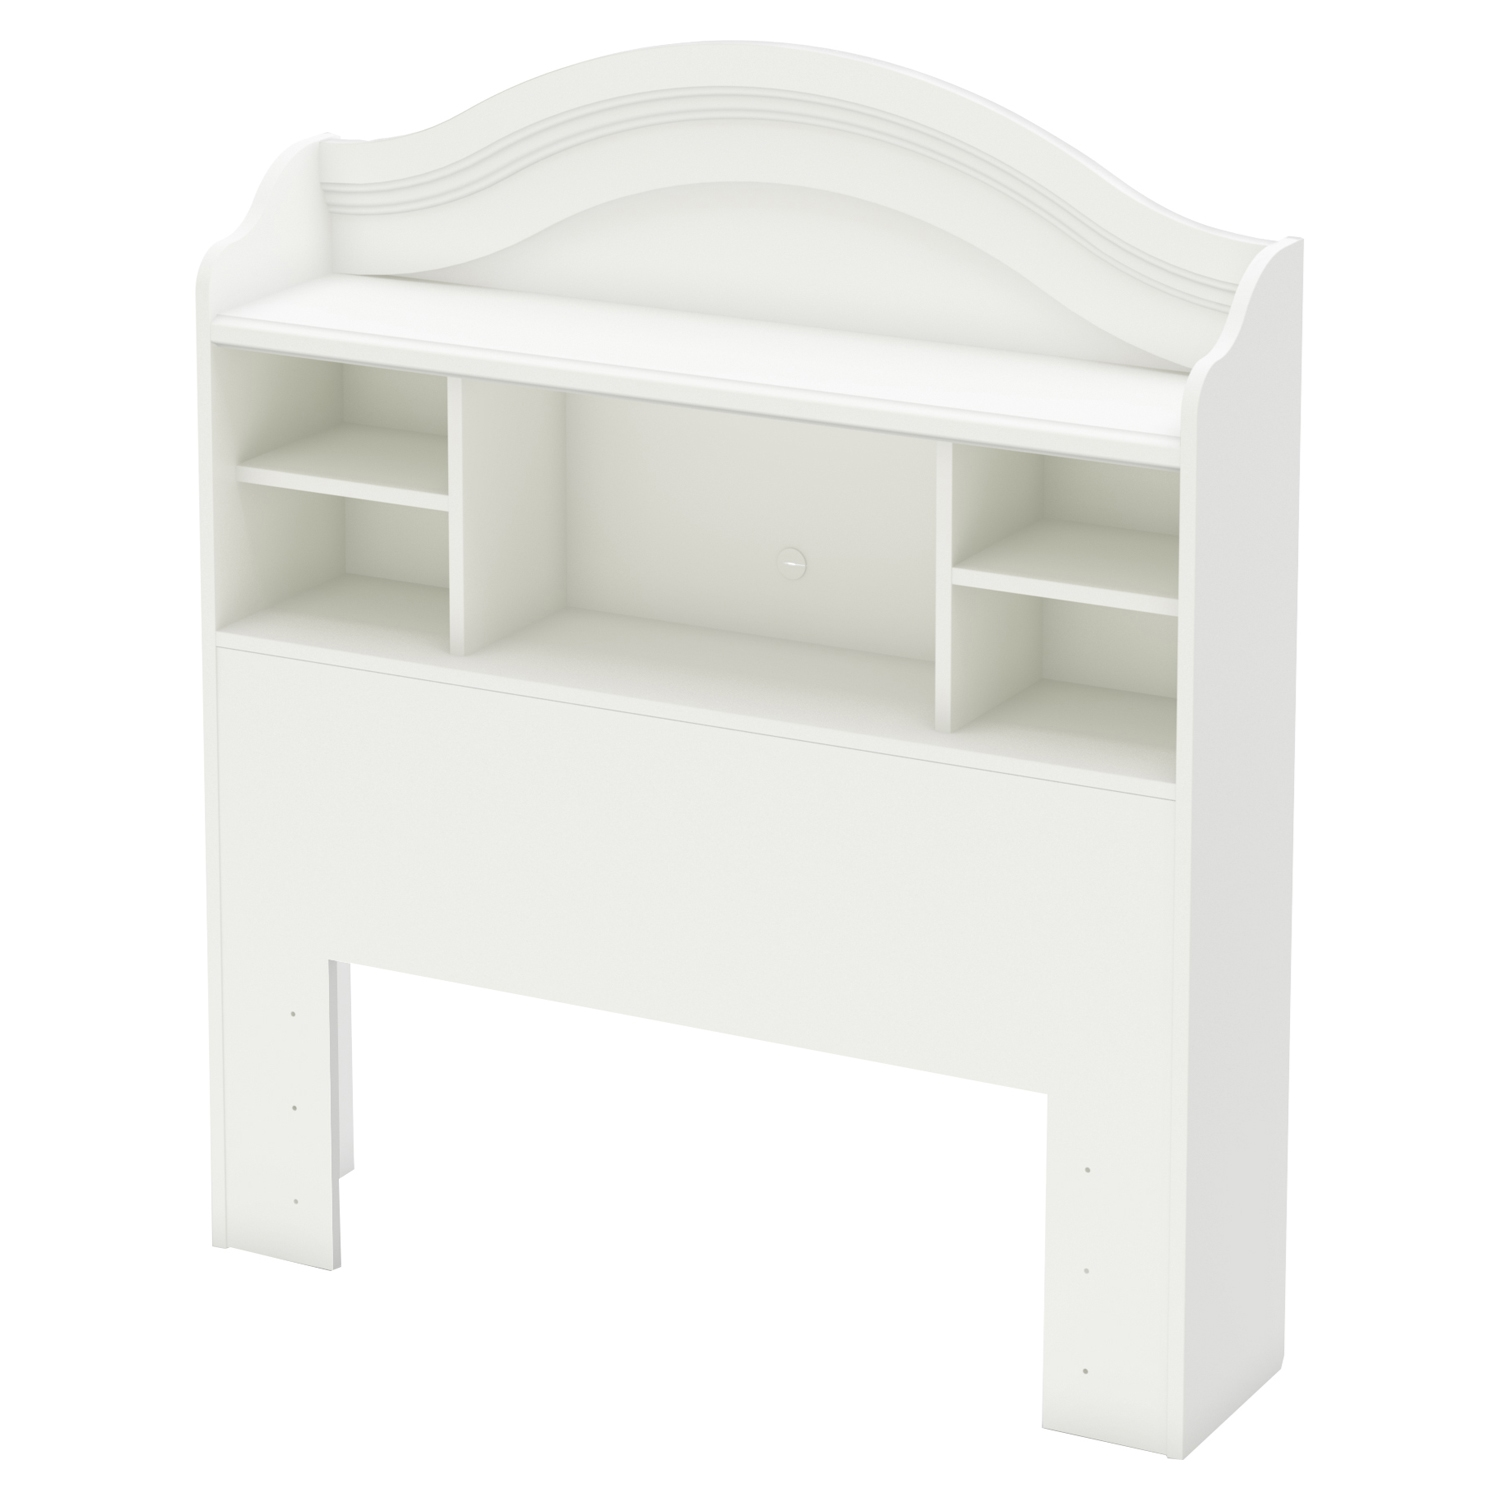 Savannah Twin Bookcase Headboard - Pure White - SS-3580098